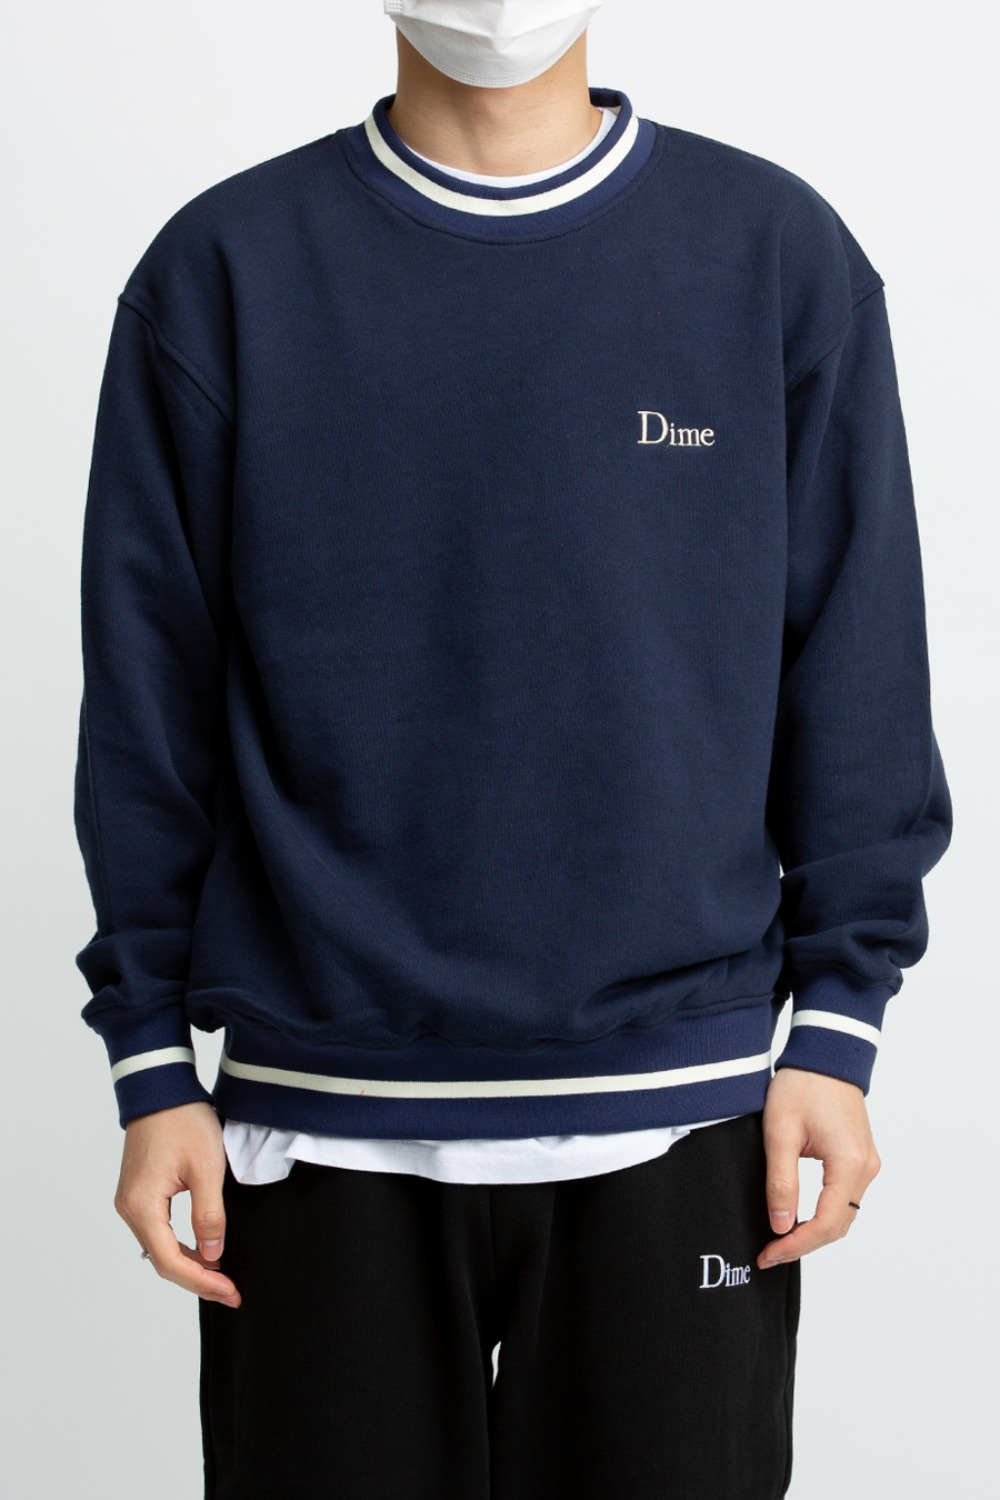 DIME CLASSIC FRENCH TERRY CREWNECK NAVY